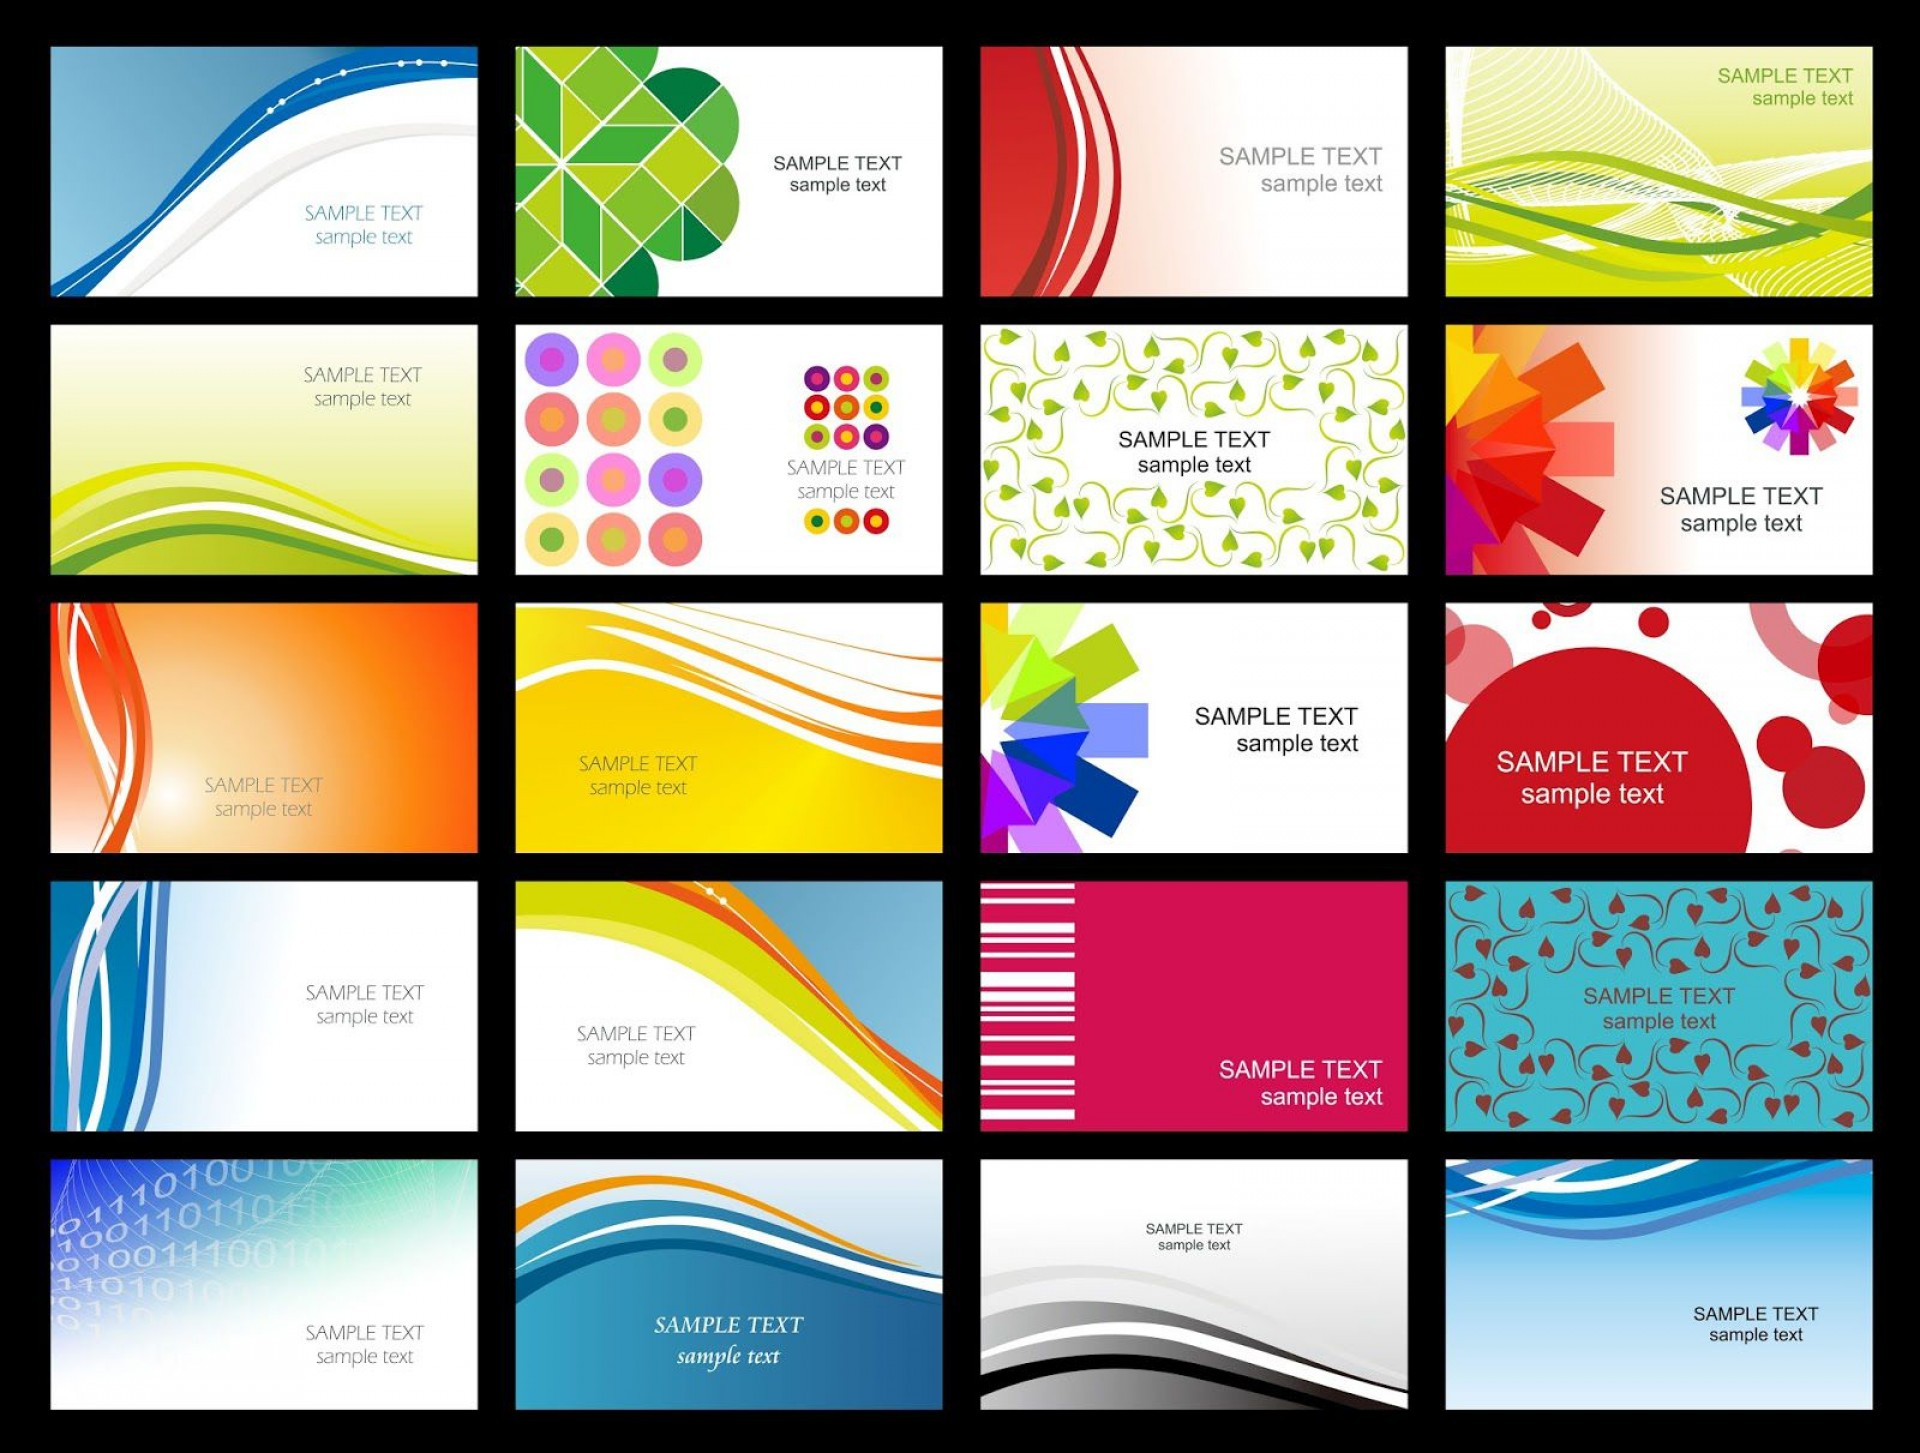 008 Striking Free Download Busines Card Template Concept  For Microsoft Publisher Photoshop Powerpoint1920